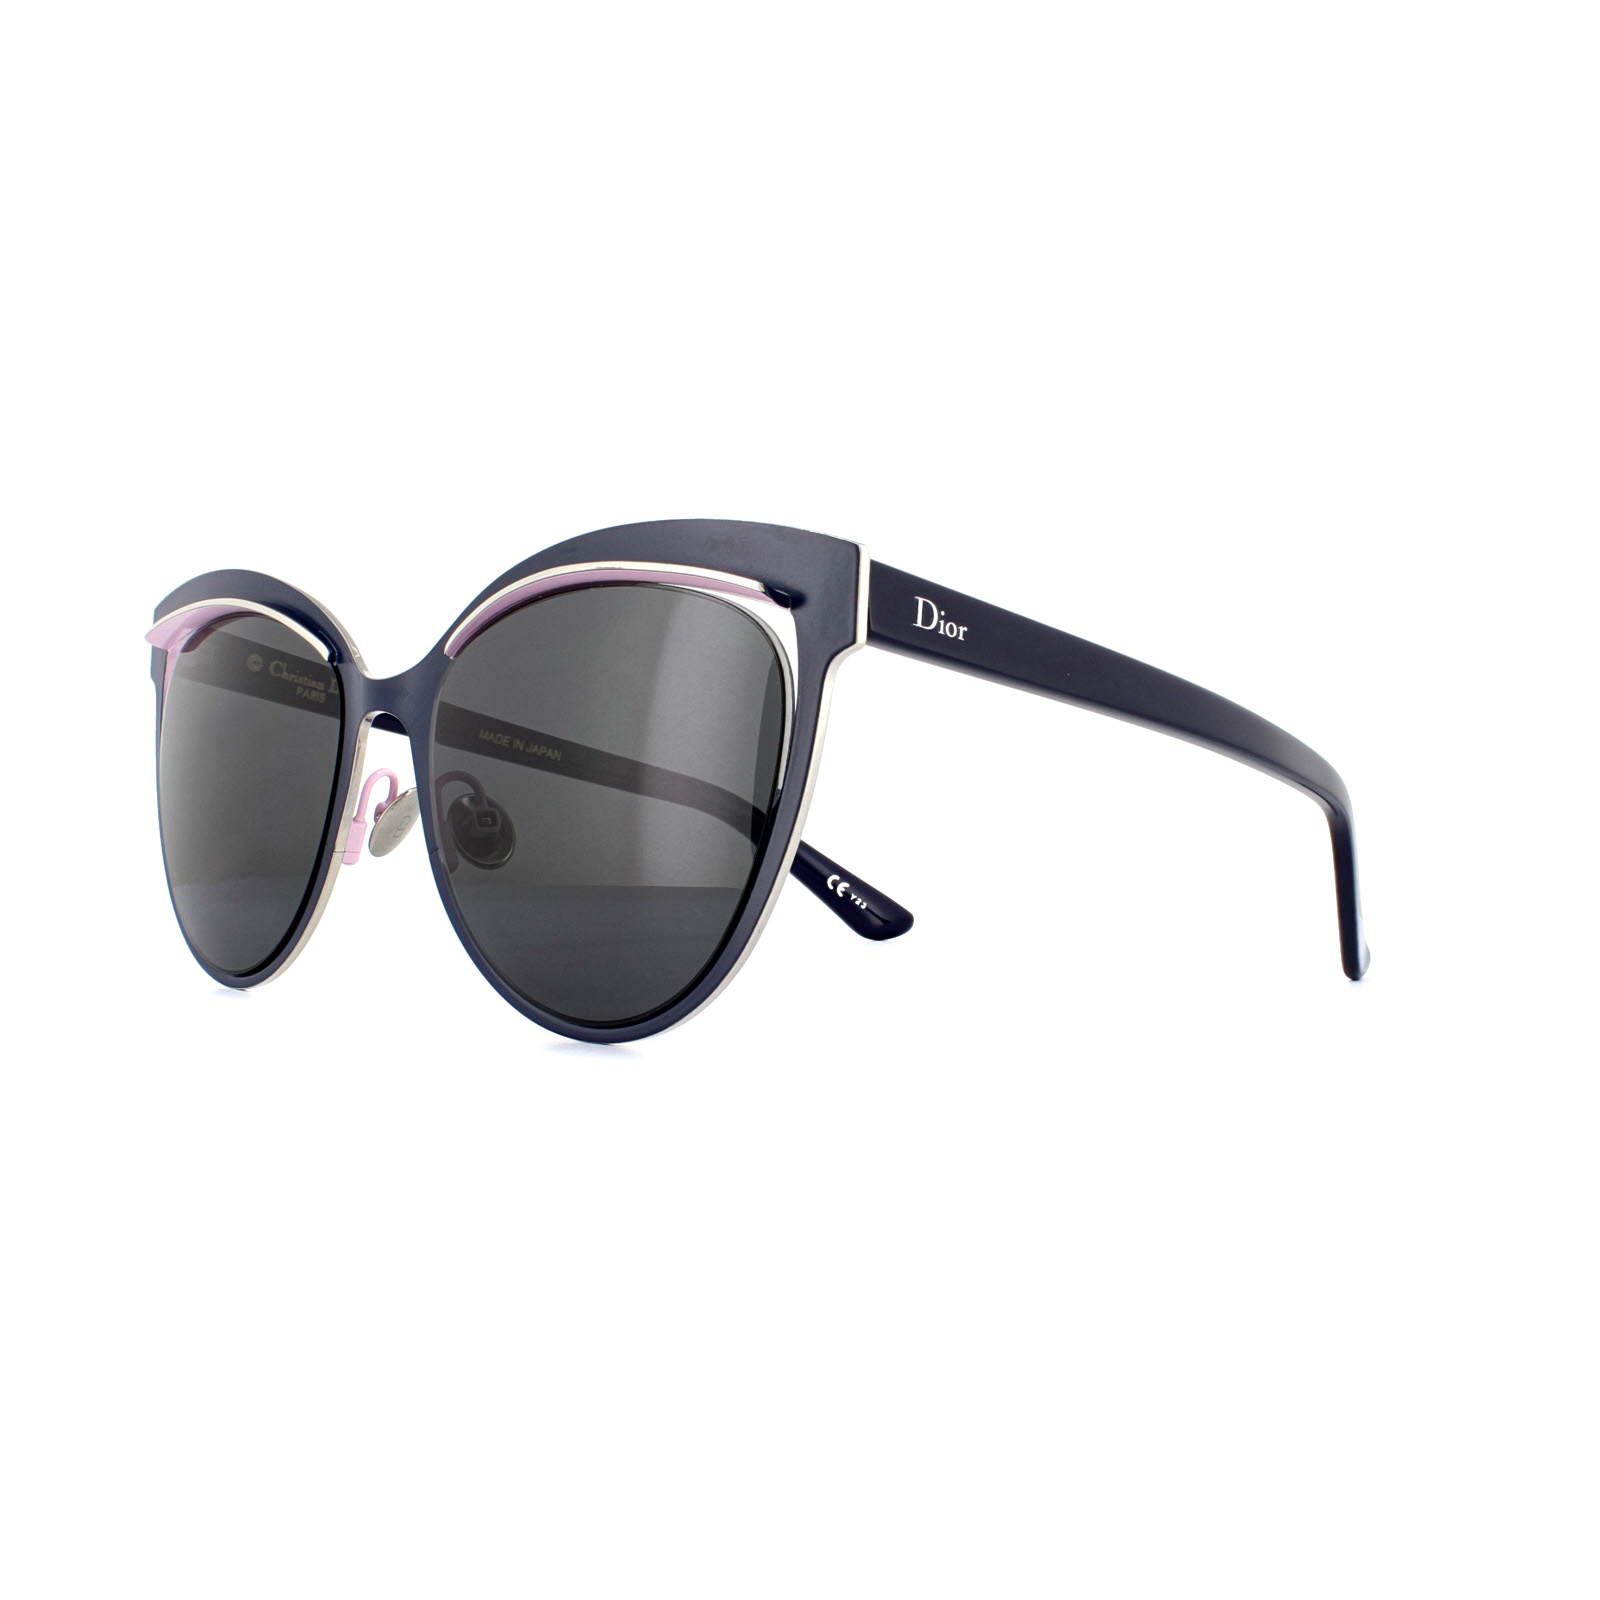 216a194ca4e1 Sentinel Dior Sunglasses Dior Inspired JB3 Y1 Navy Blue Pink Grey Gradient